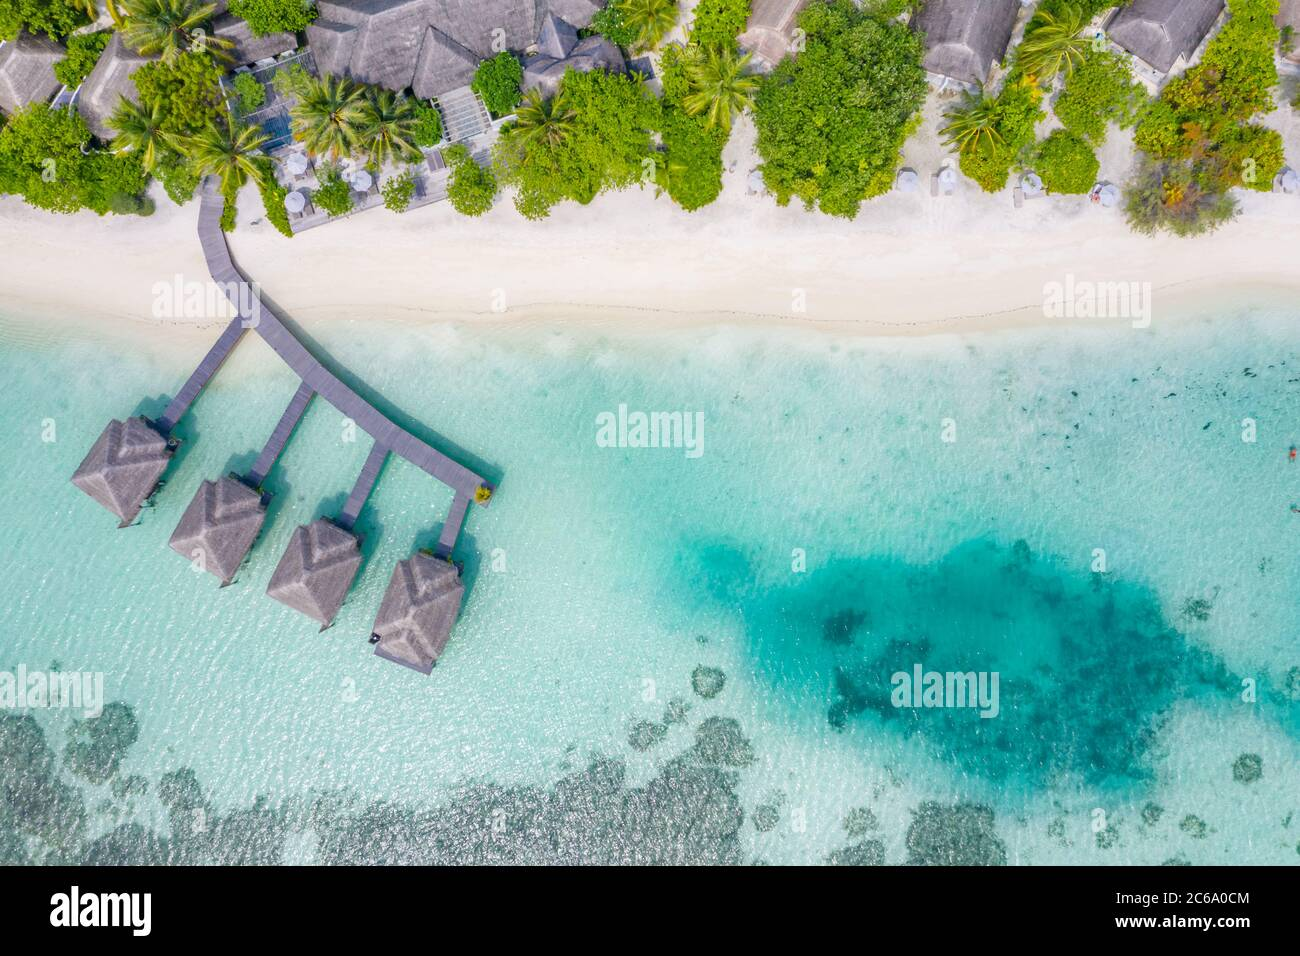 Perfect aerial landscape, luxury tropical resort or hotel with water villas and beautiful beach scenery. Amazing bird eyes view in Maldives, landscape Stock Photo